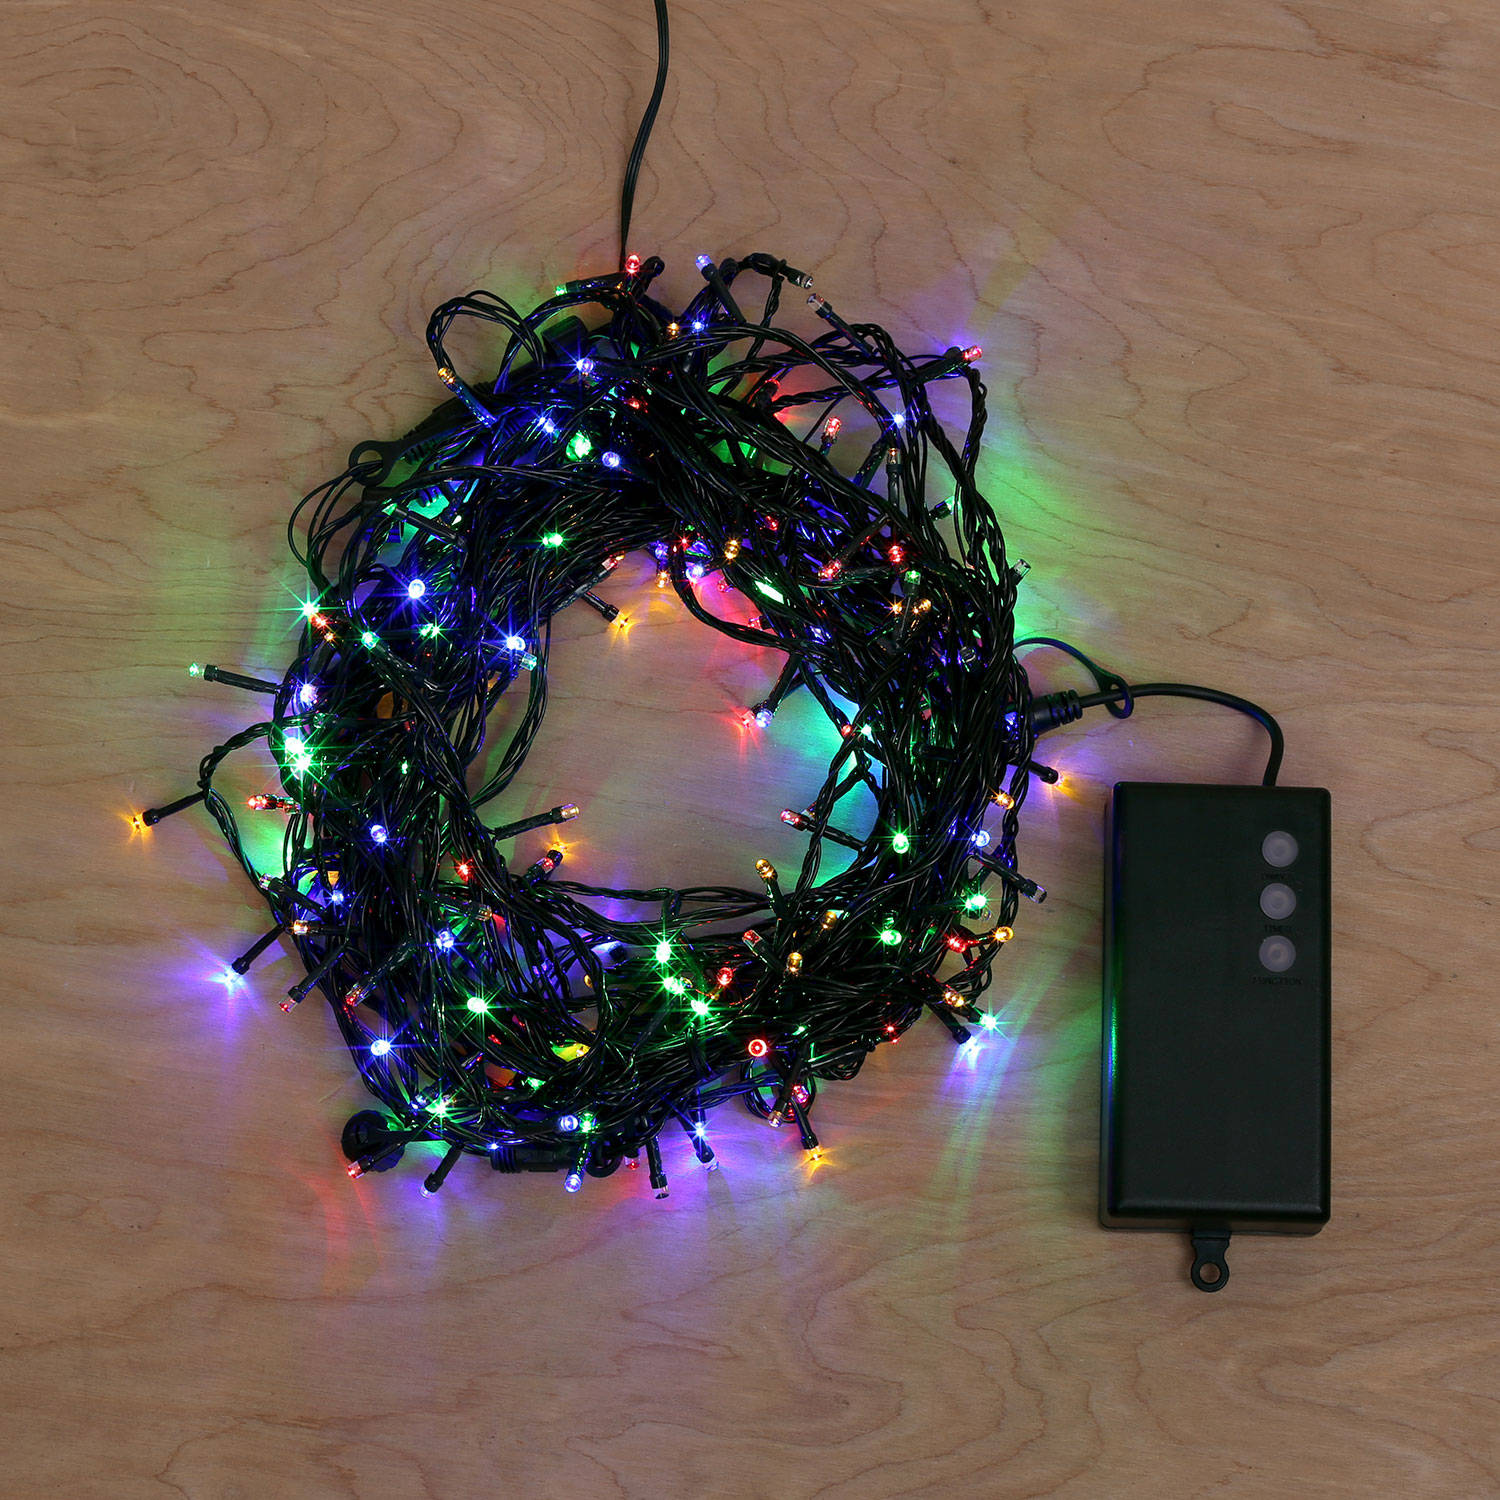 Outdoor String Lights With Timer : Events, Promotions and Inspirations from Lights.com